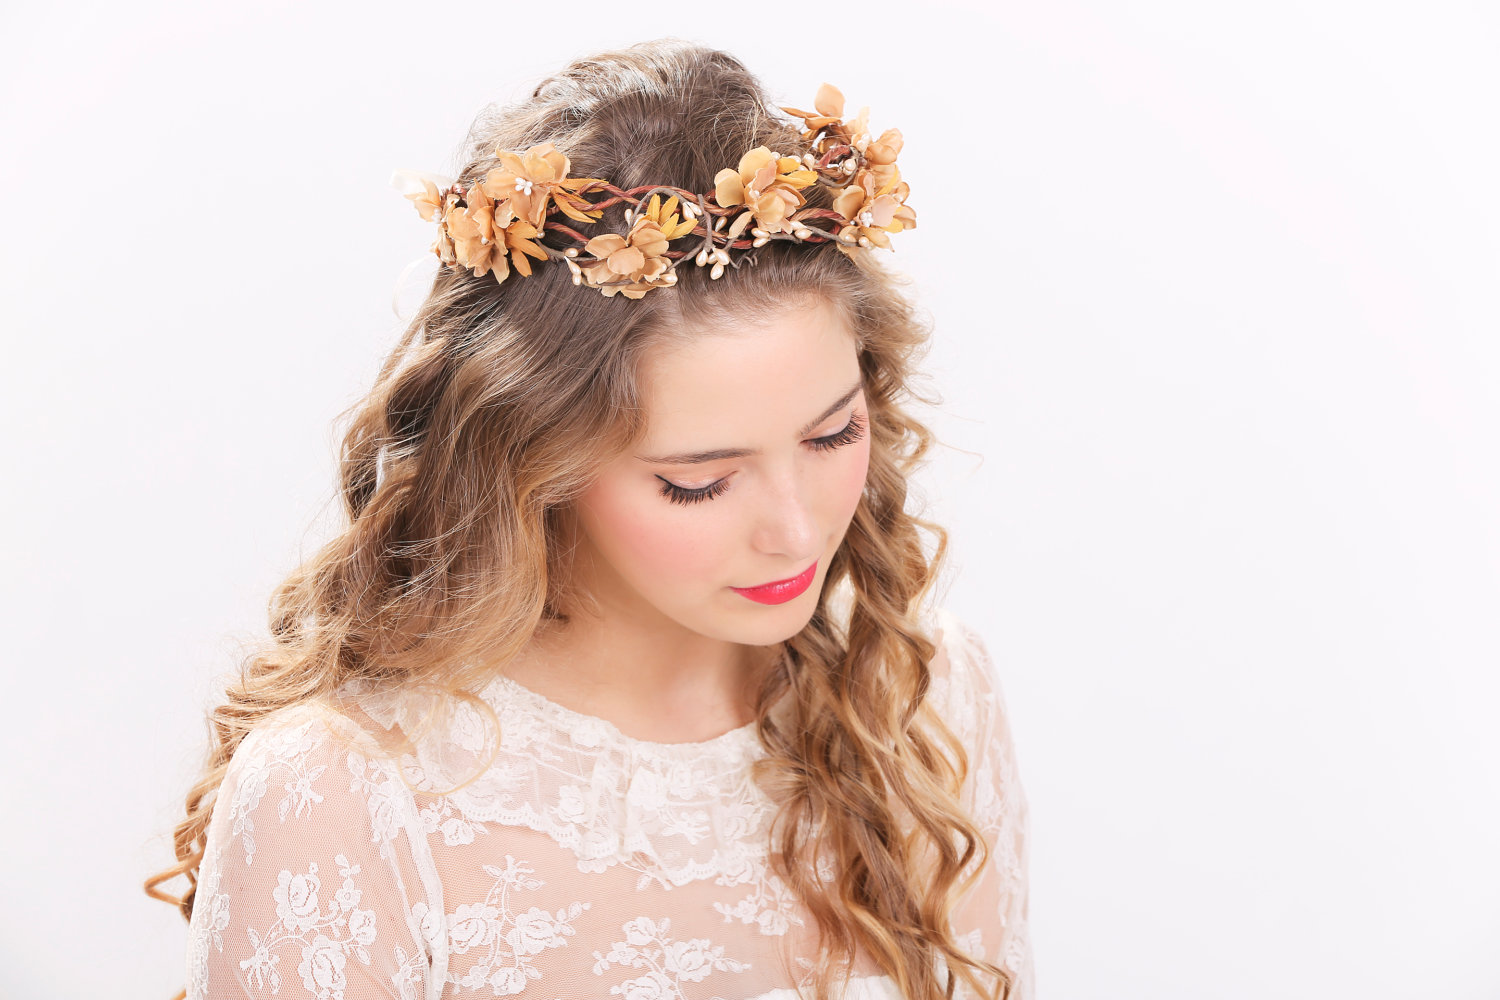 Rustic Flower Crown Bridal Headband Flower Crown Headpiece Wedding Headban